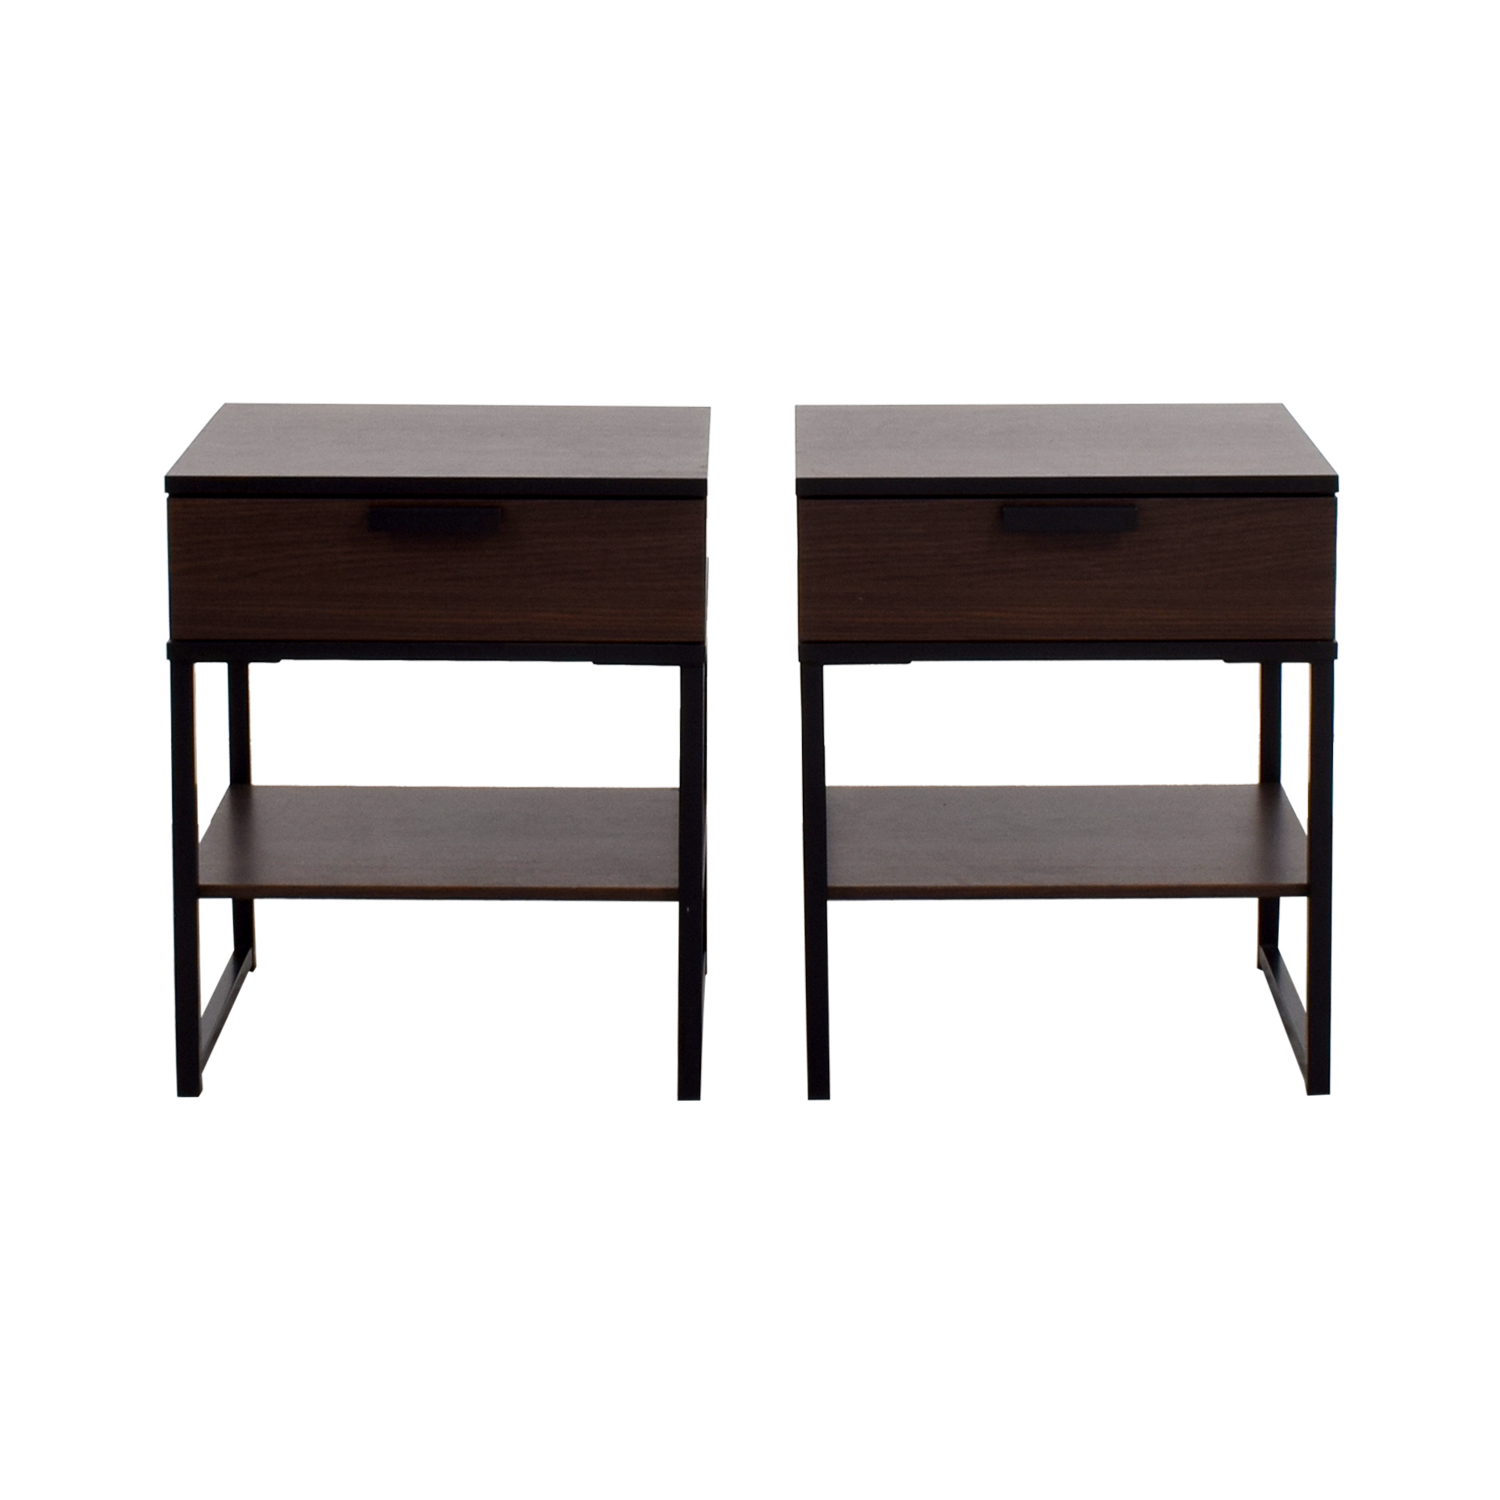 IKEA IKEA Modern End Tables on sale